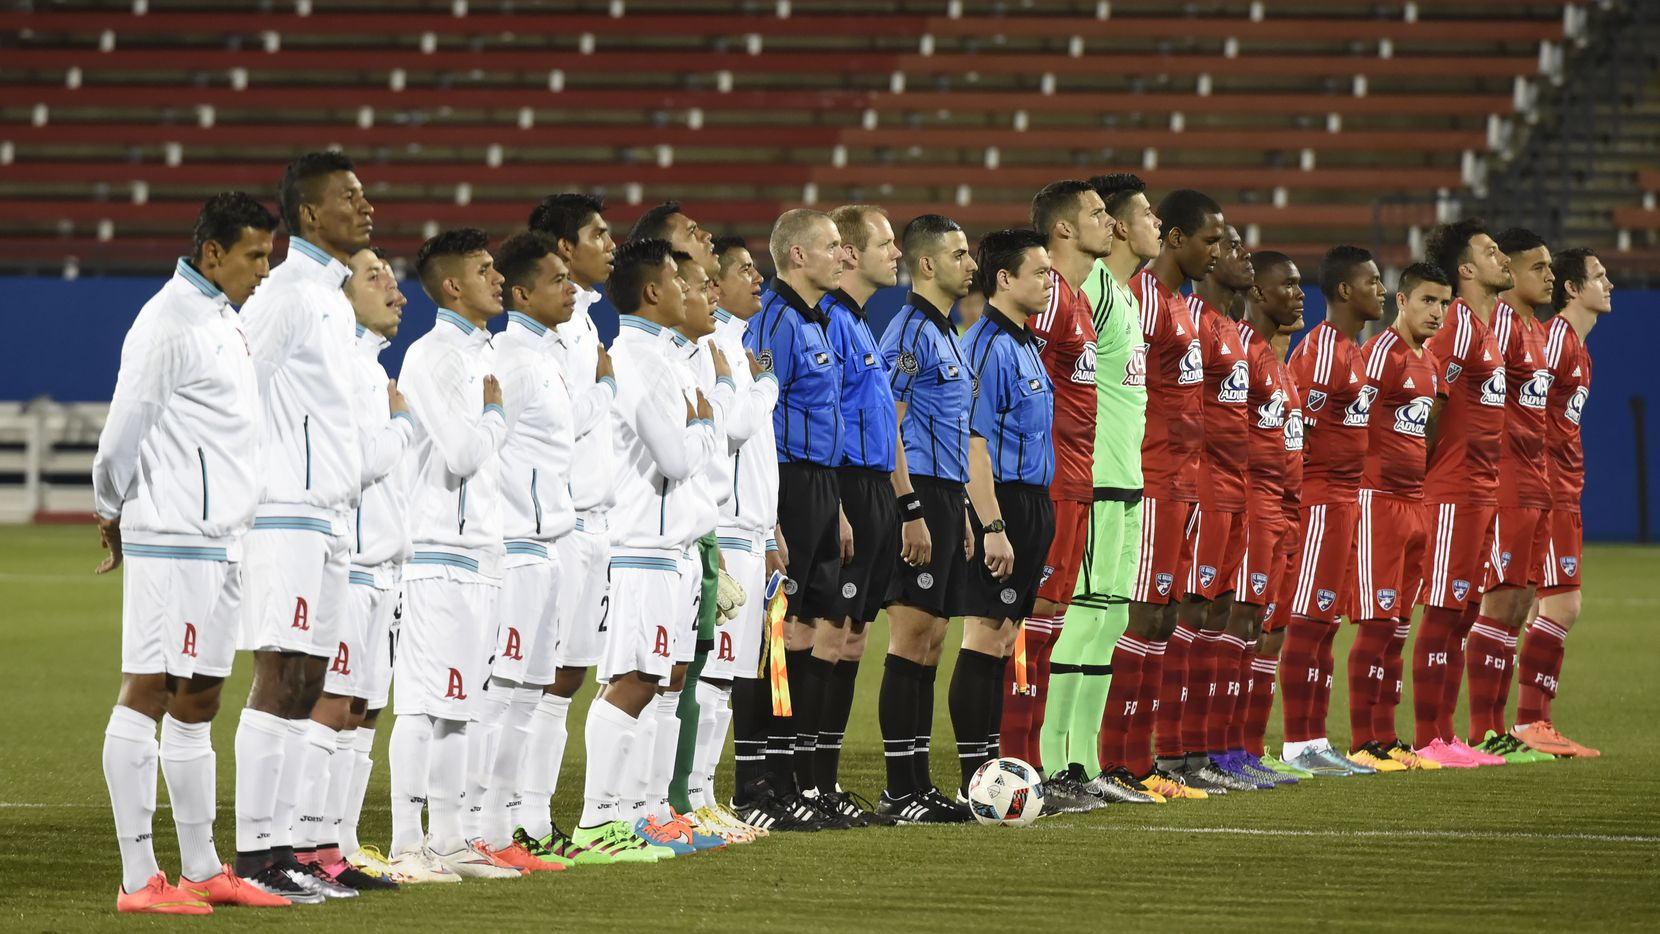 Alianza FC, left, and FC Dallas, line up prior to their preseason game at Toyota Stadium in Frisco, Texas, on February 20, 2016. (Michael Ainsworth/Special Contributor)